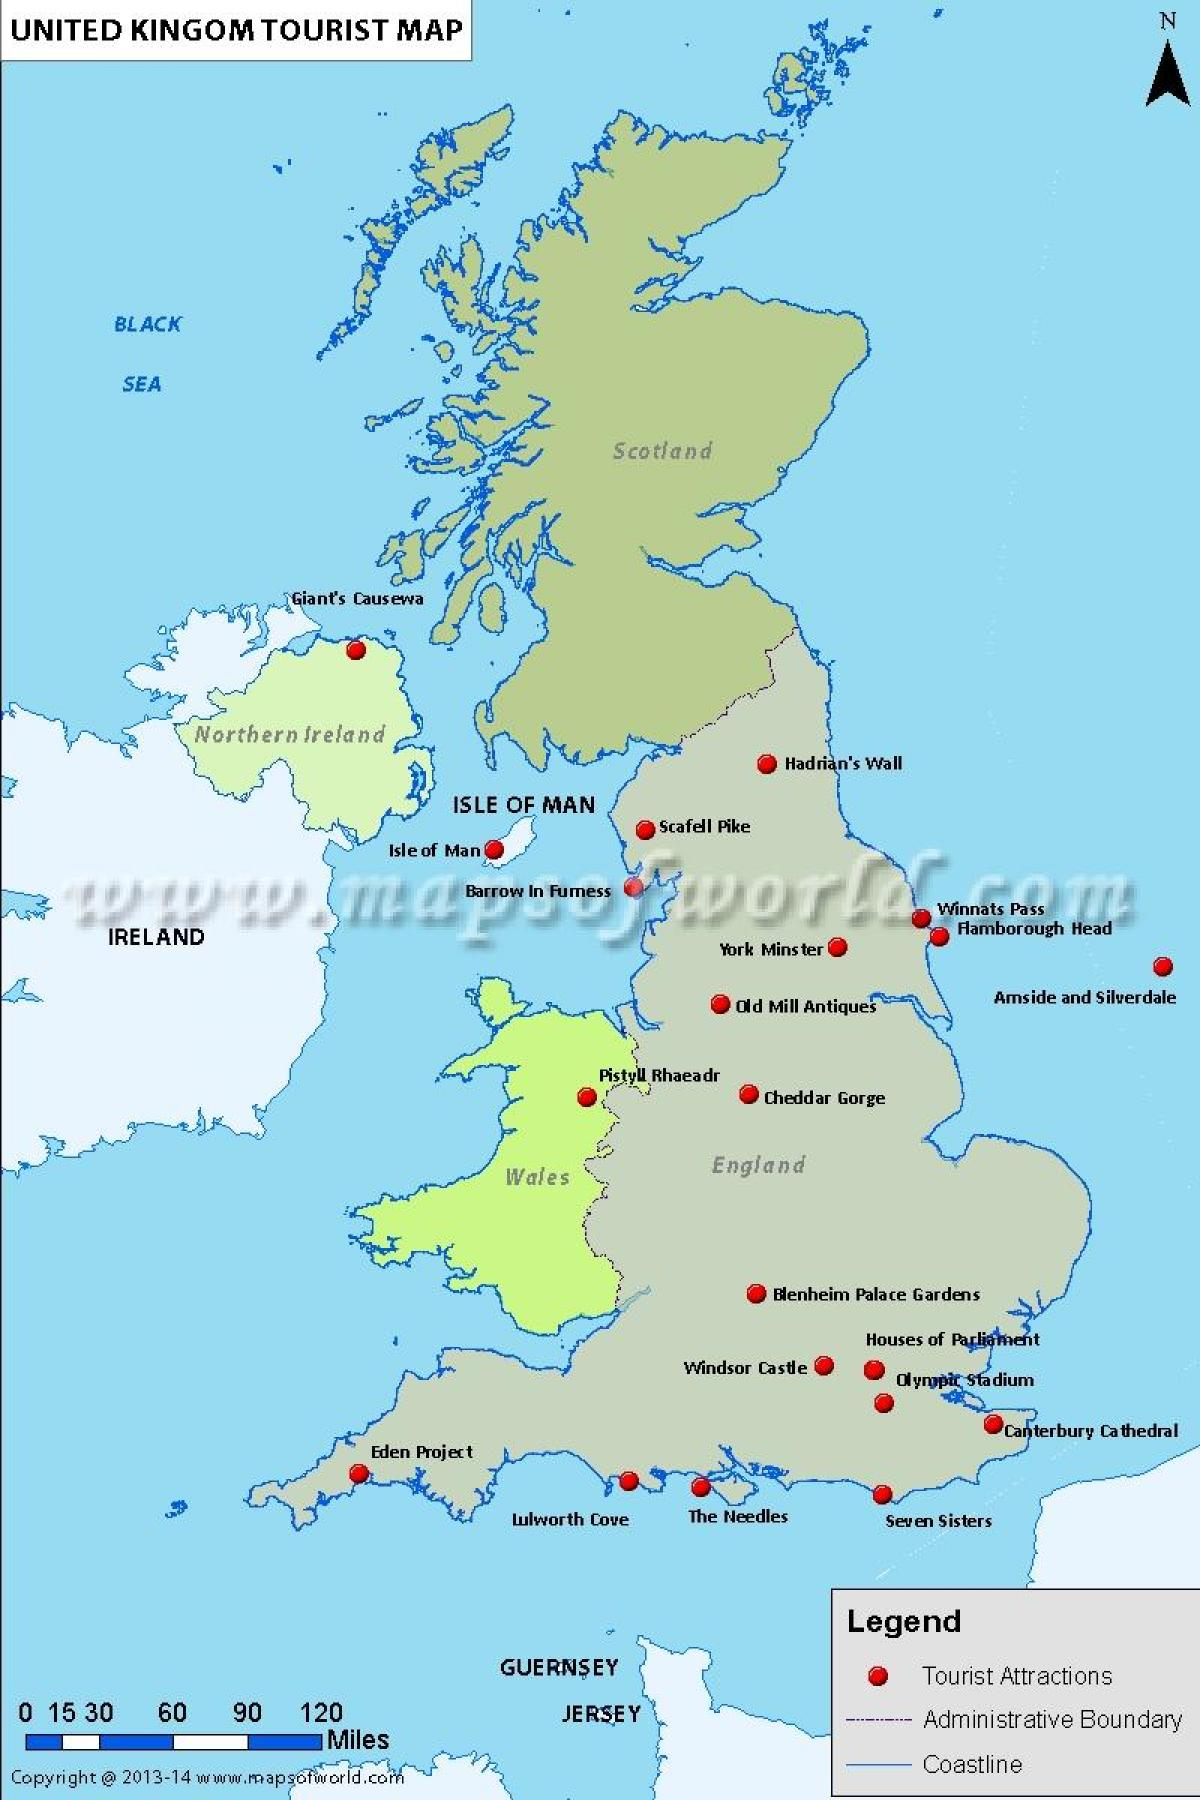 UK tourist map with attractions United Kingdom tourist attractions